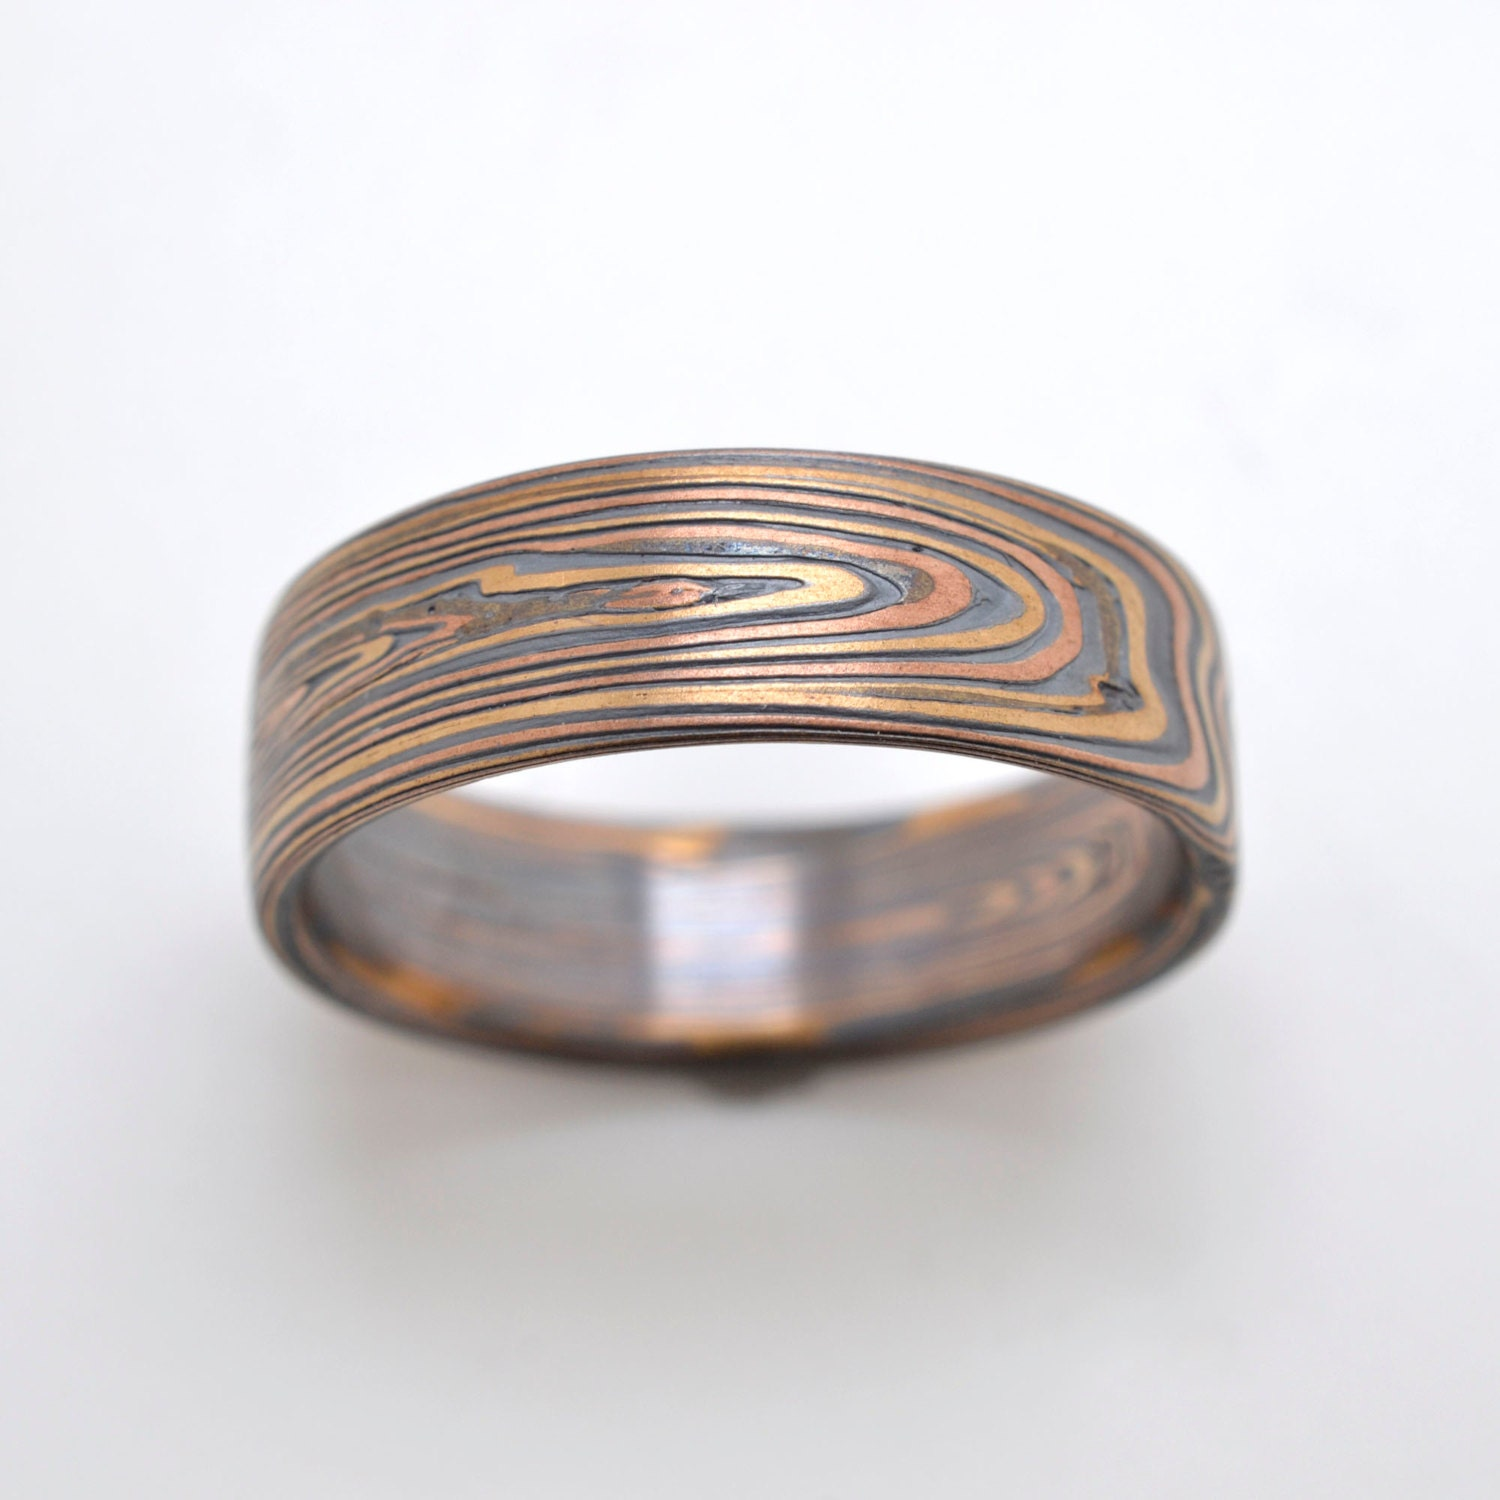 Mokume Gane Ring Wedding Band Vortex Pattern In Oxidized Fire